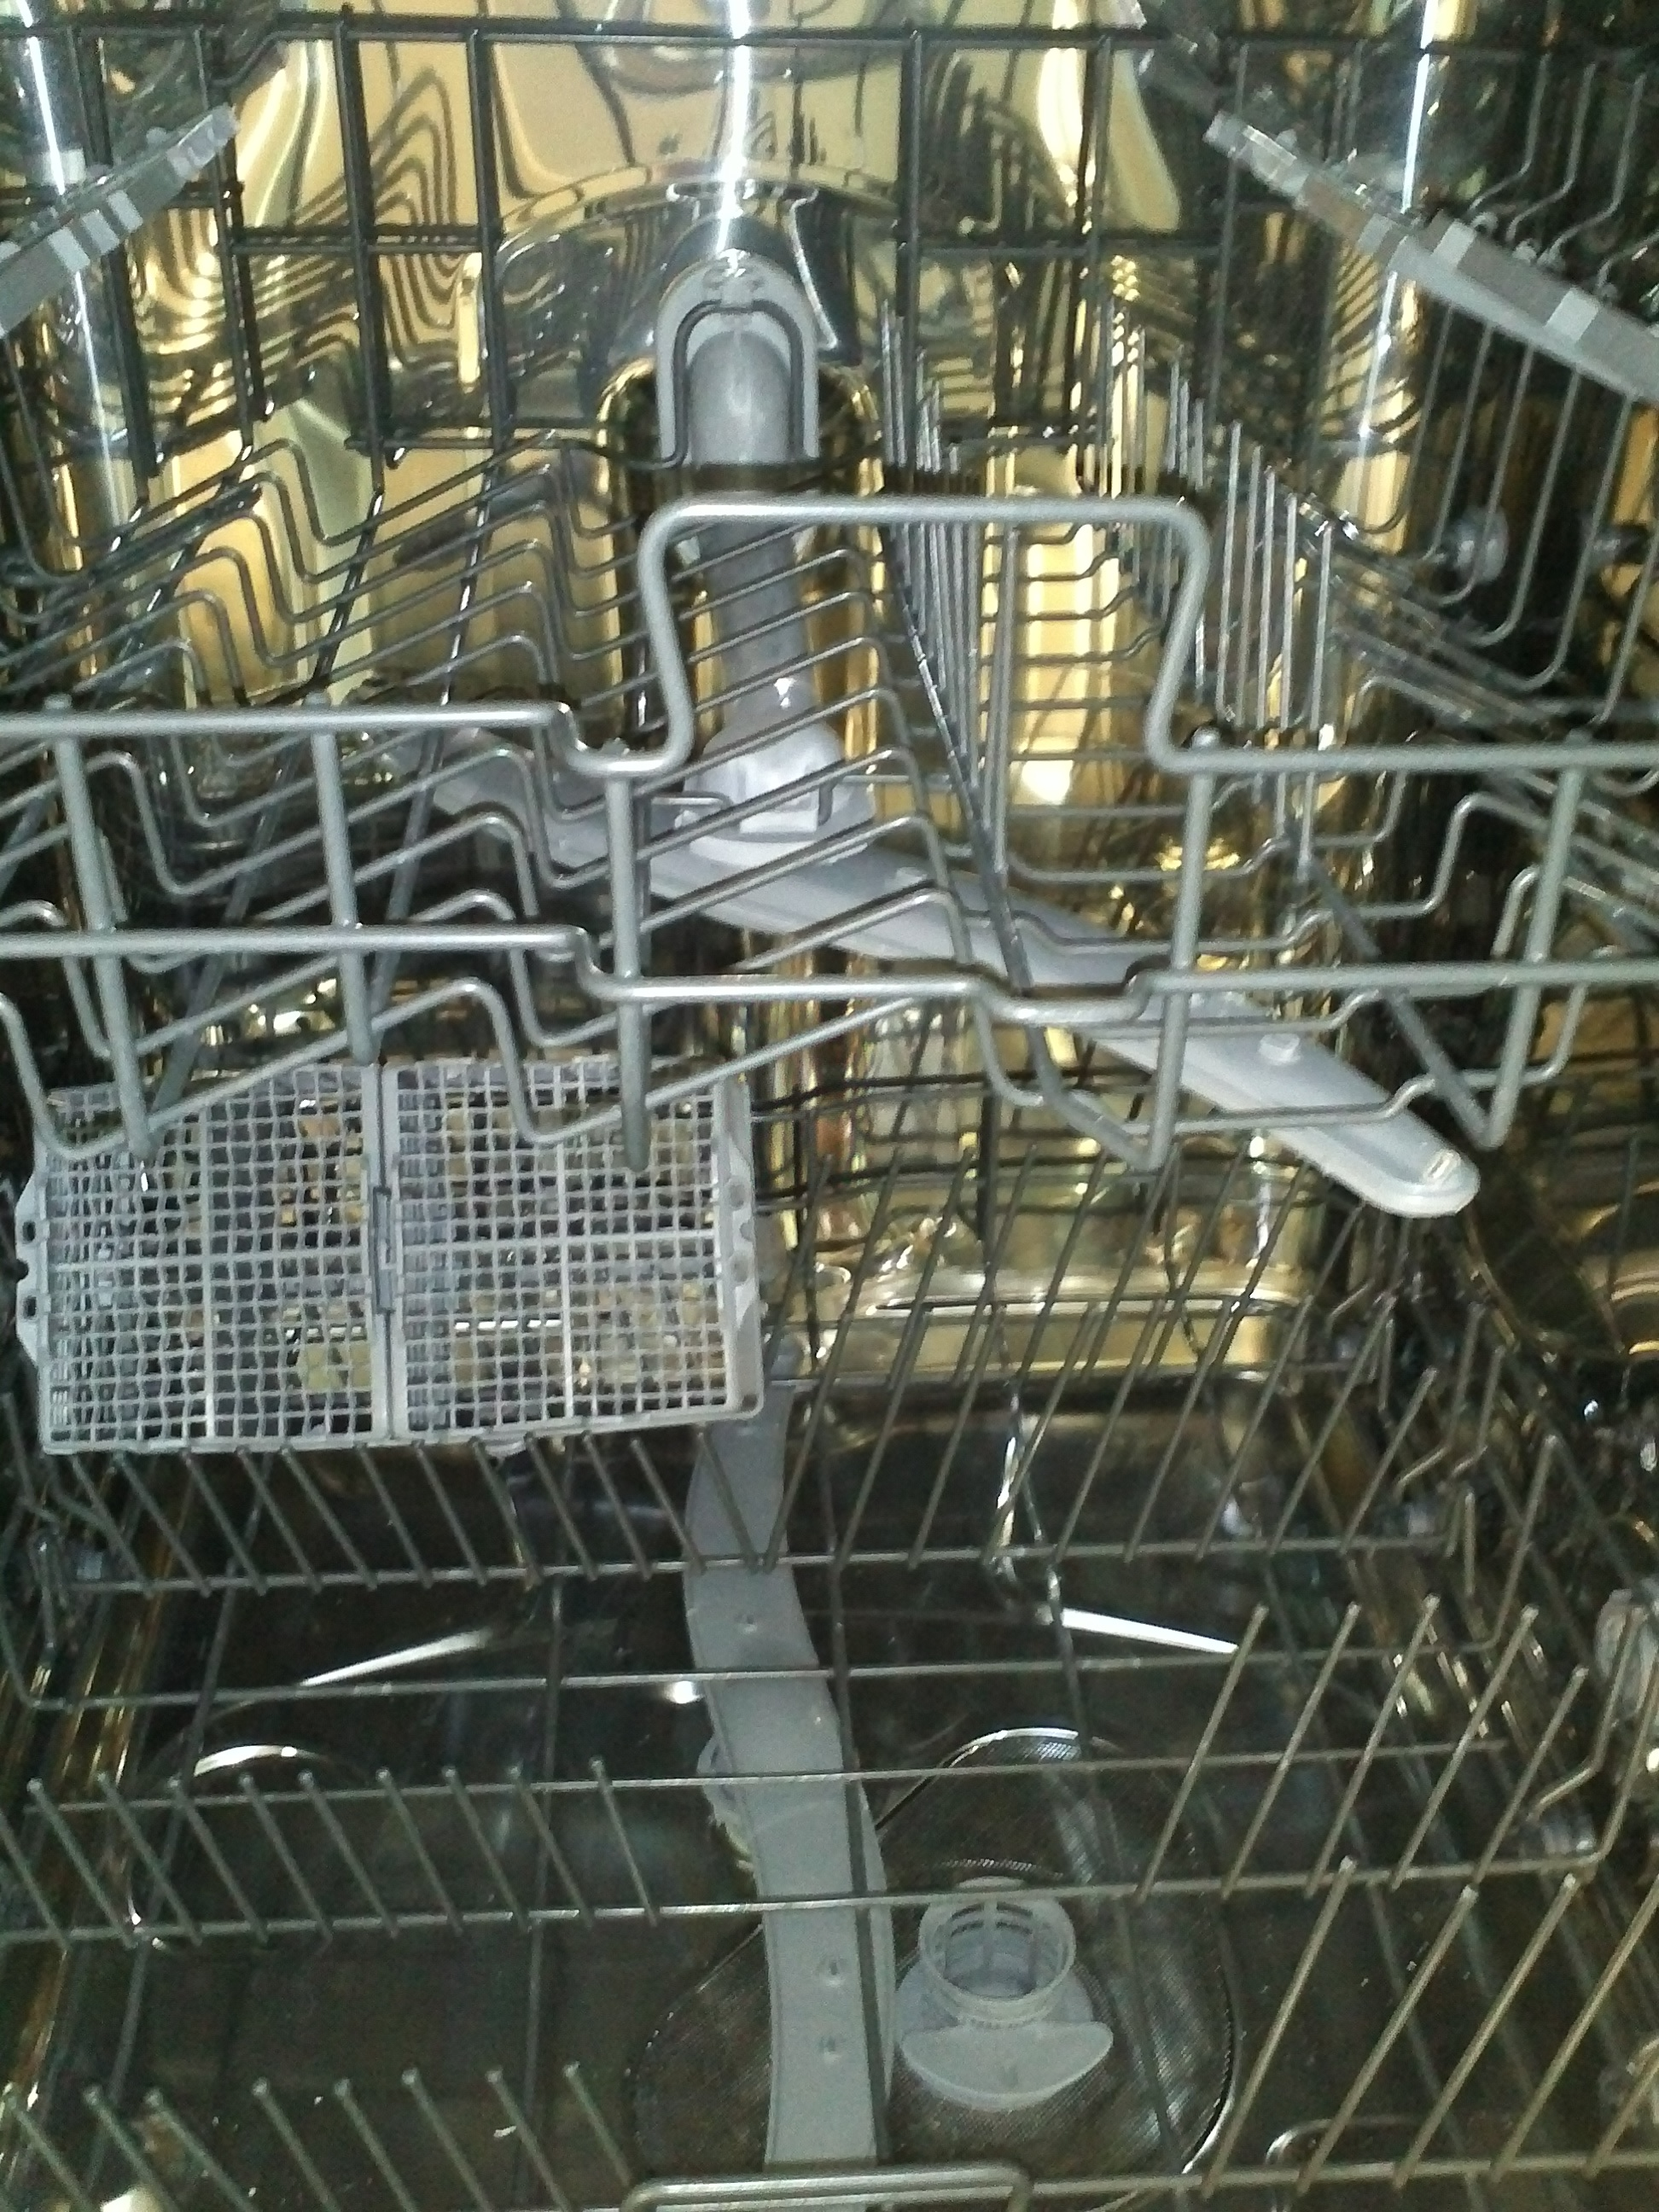 Dishwasher Fisher&Paykel DW60SCW1 Open